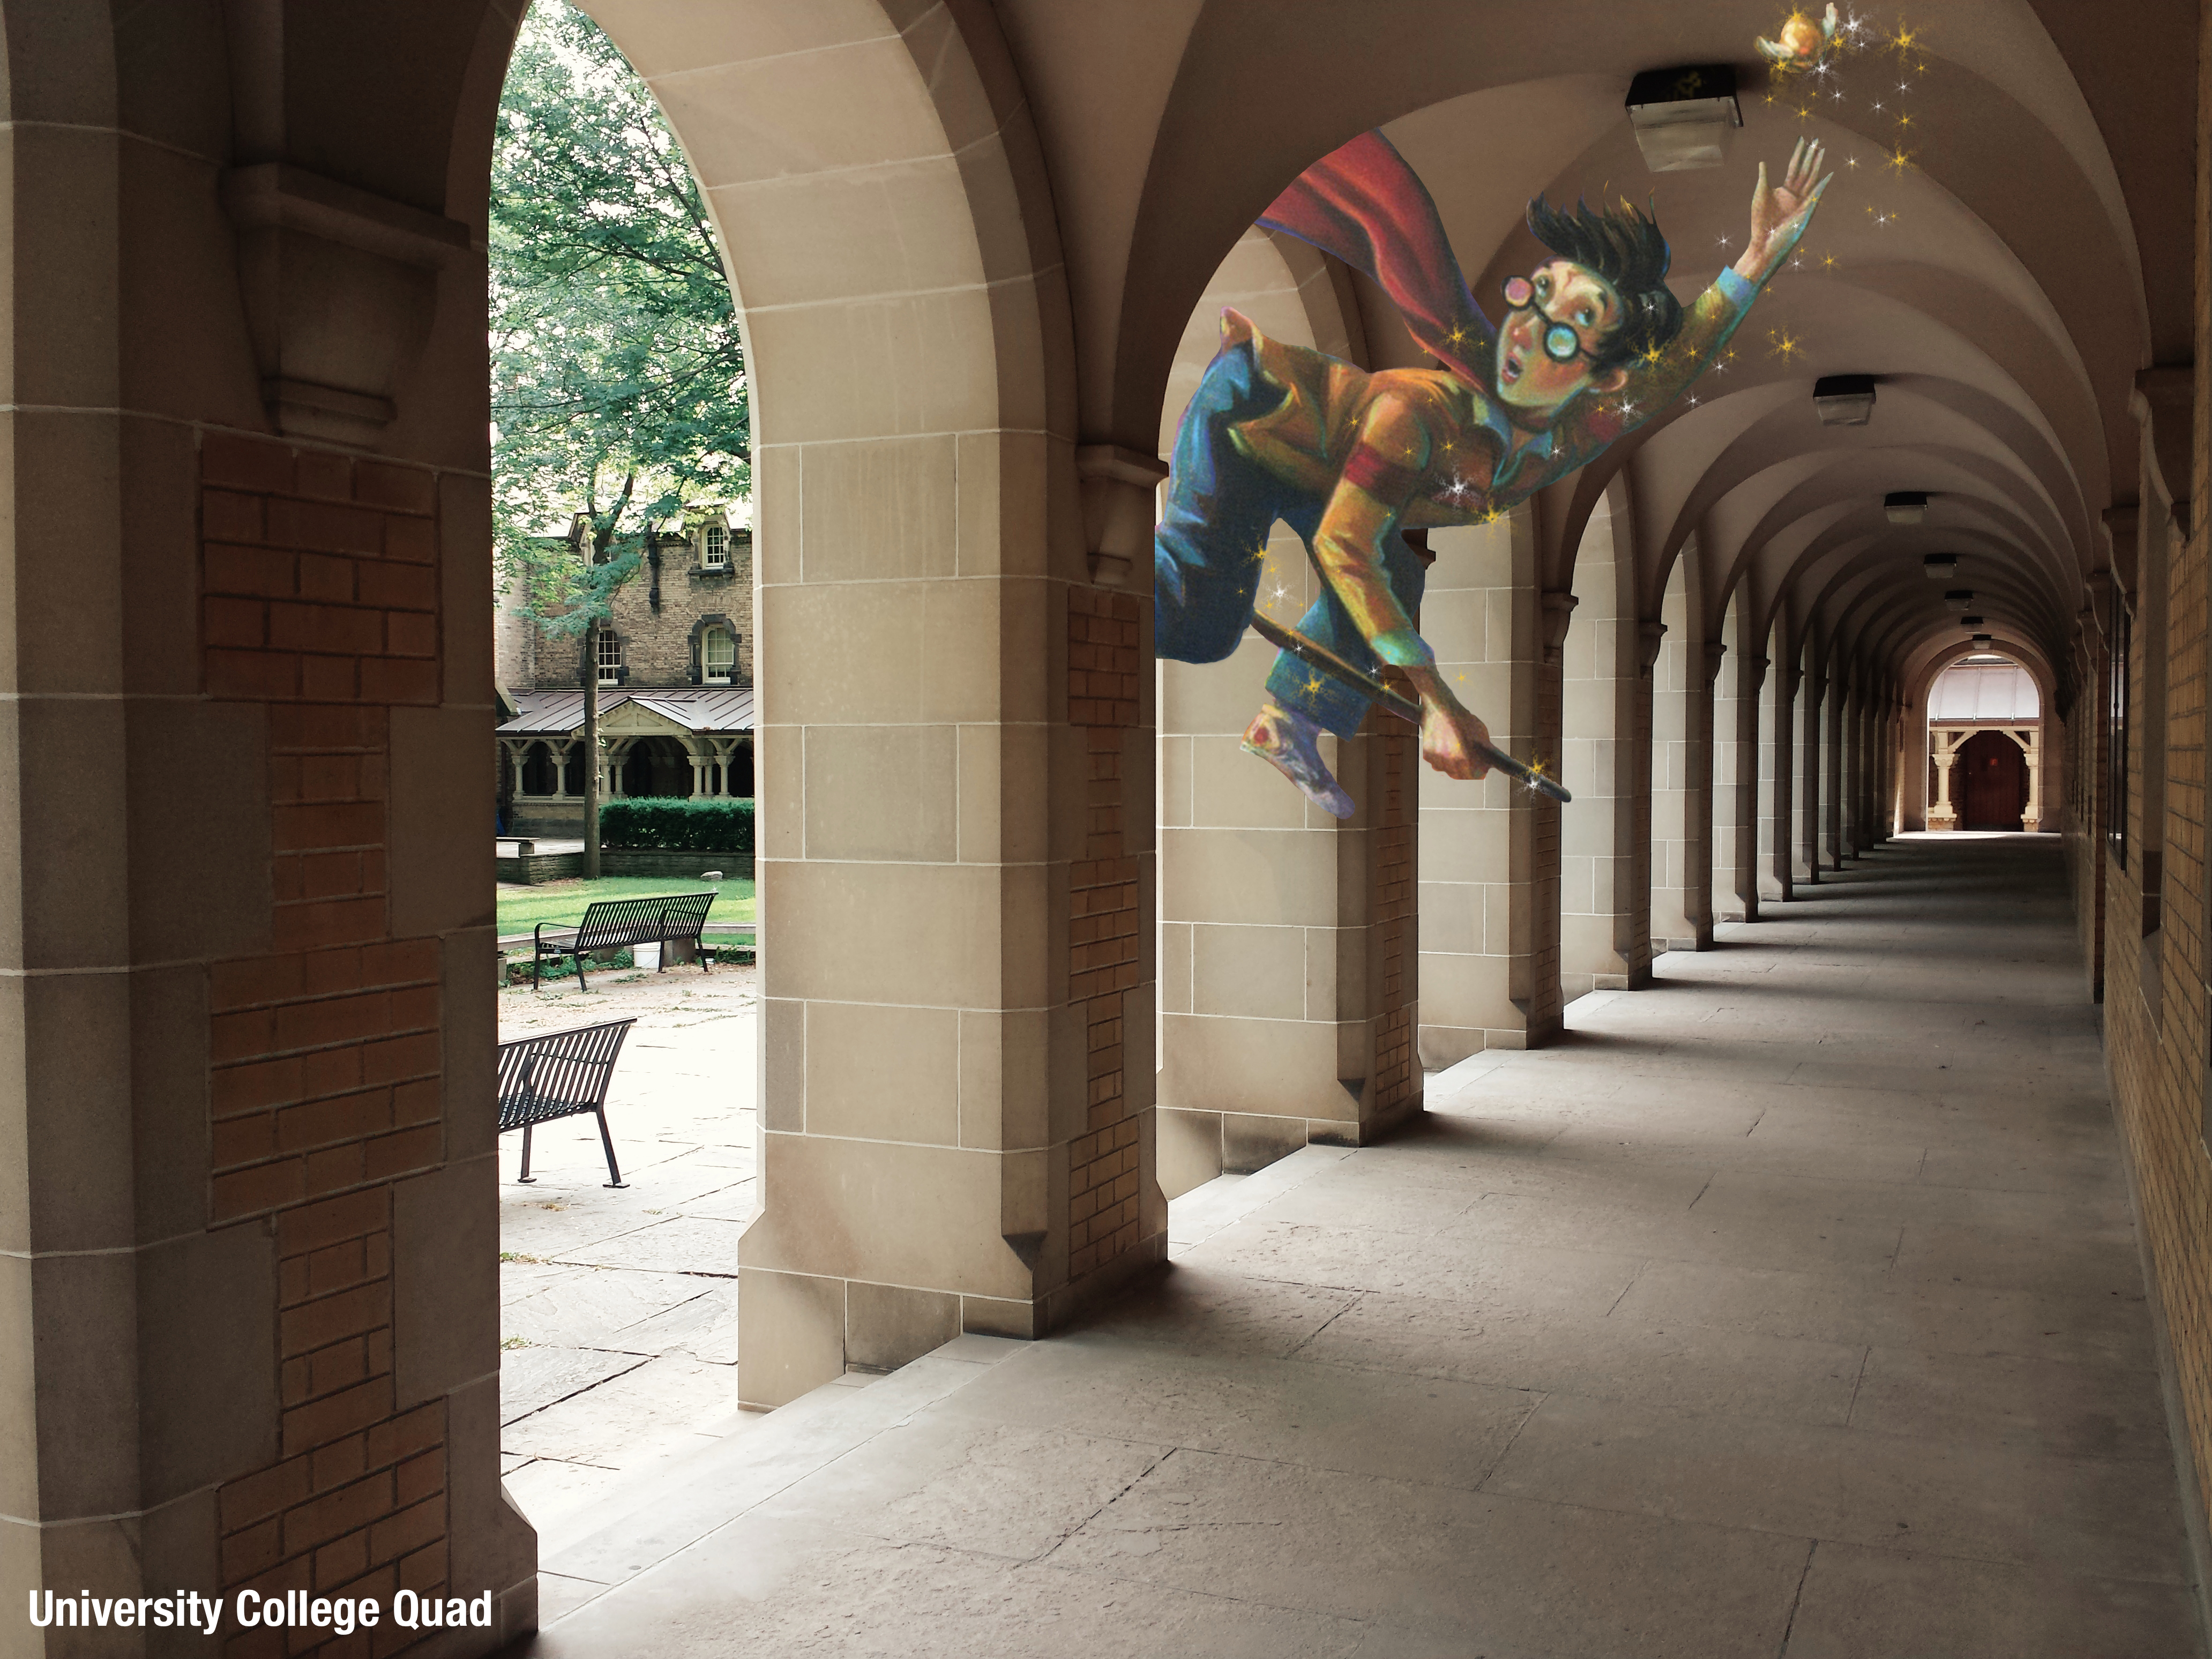 The arched corridor in the UC quad. Cartoon Harry Potter is flying under an arch trying to catch the Snitch.